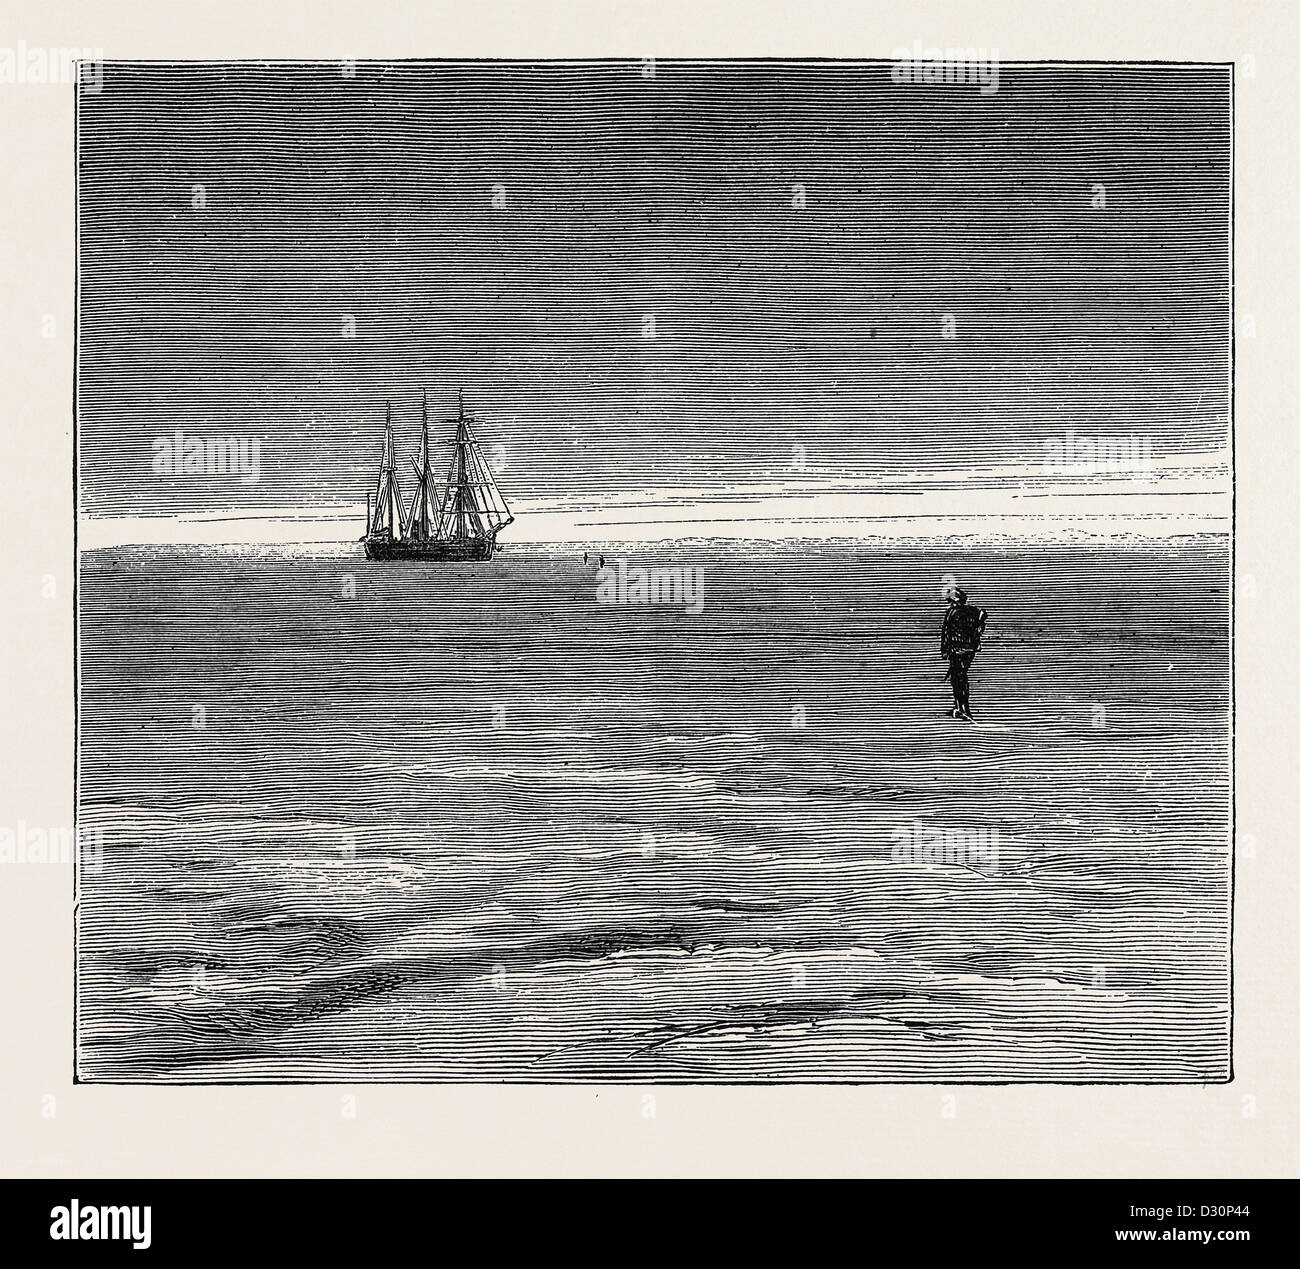 THE AUSTRIAN POLAR EXPEDITION: THE 'TEGETHOFF' ENCLOSED IN THE ICE - Stock Image